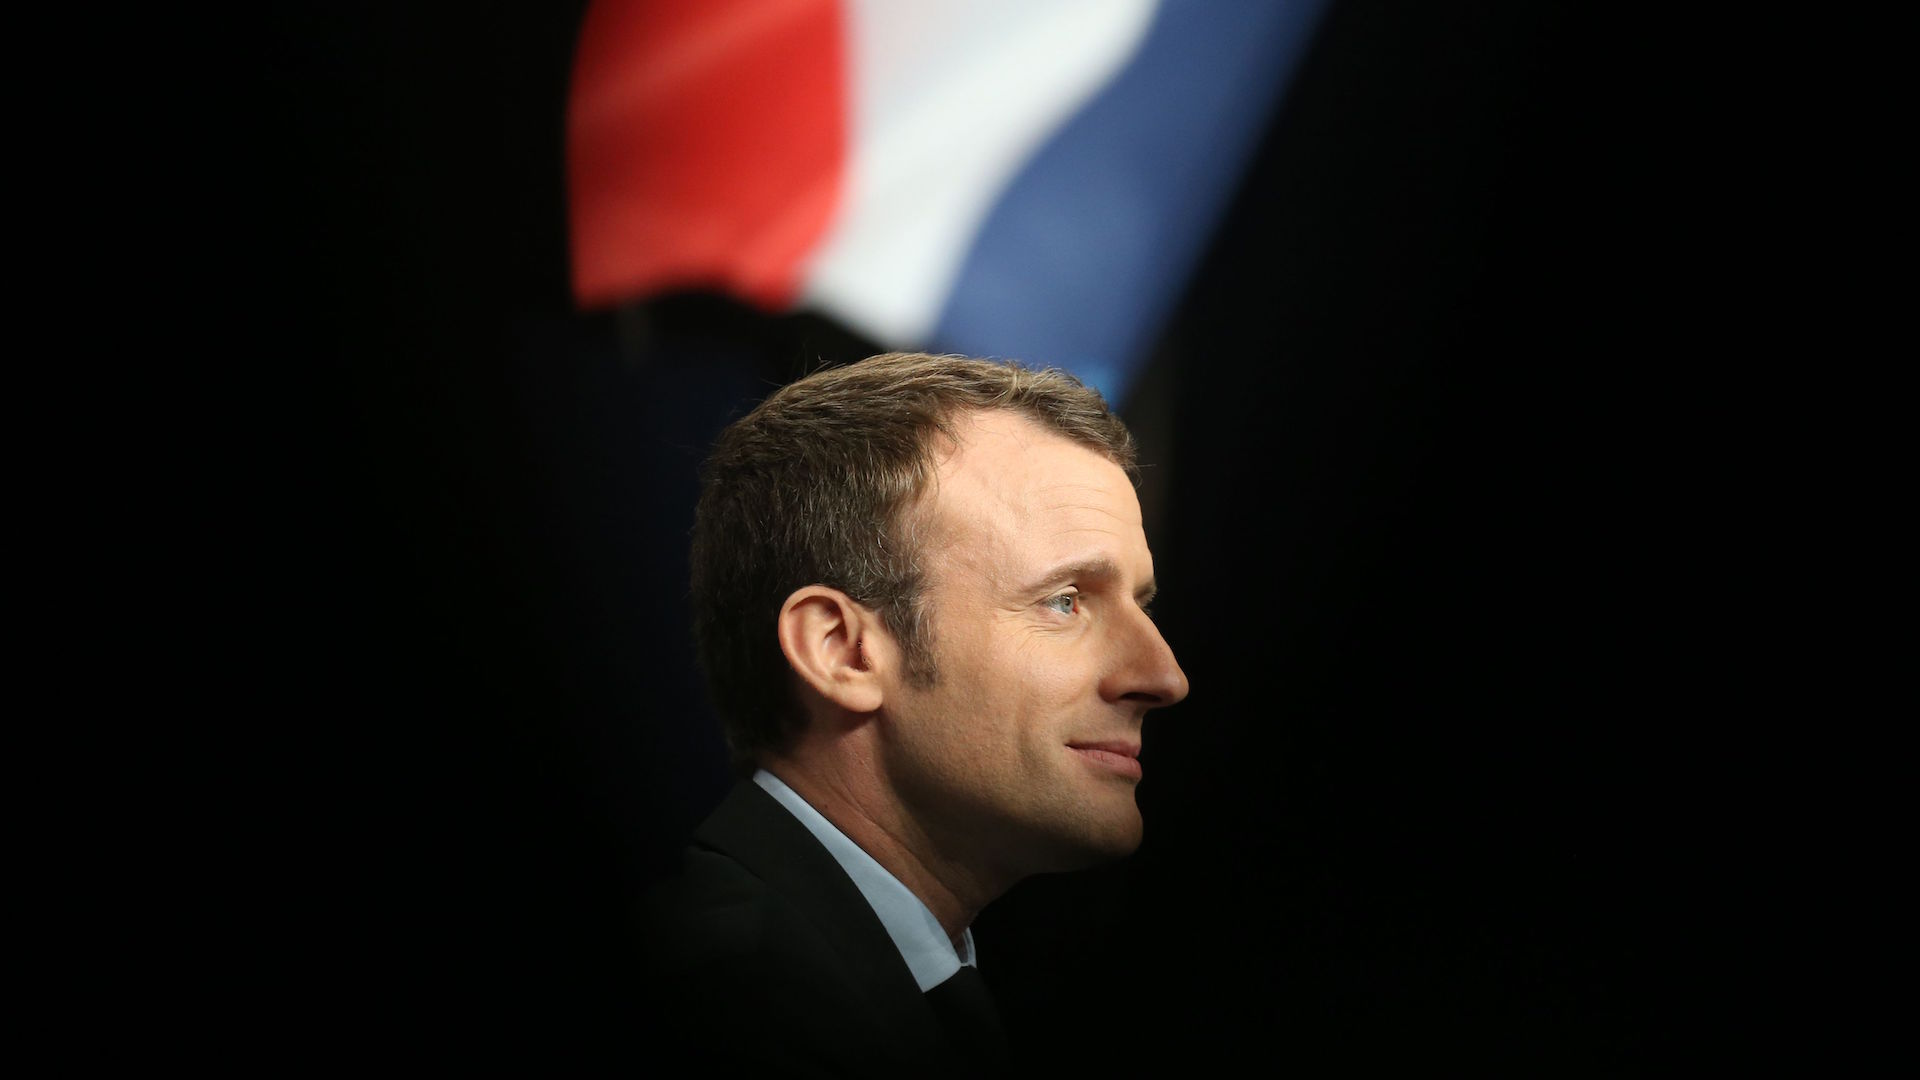 Emmanuel Macron Is 39 And His Wife Is 64 French Women Say It S About Time The Washington Post